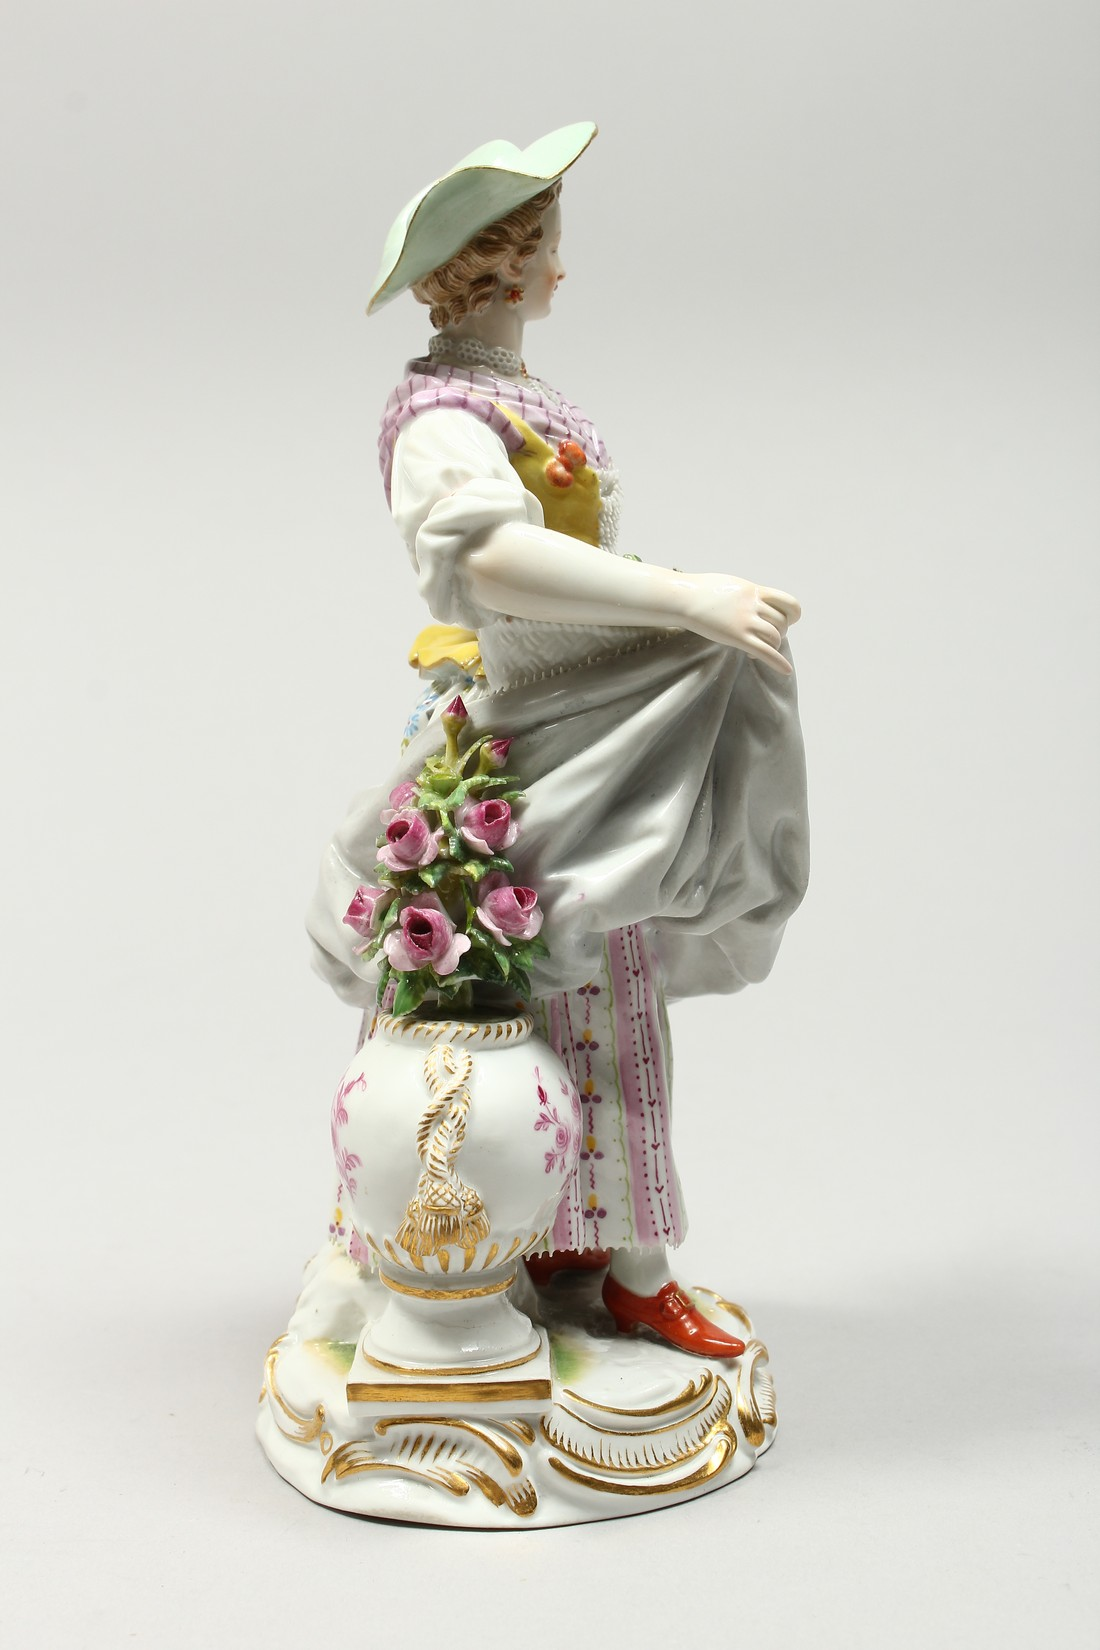 A GOOD MEISSEN PORCELAIN FIGURE OF A GARDENERESE, holding a sickle, carrying a basket of flowers, an - Image 4 of 14